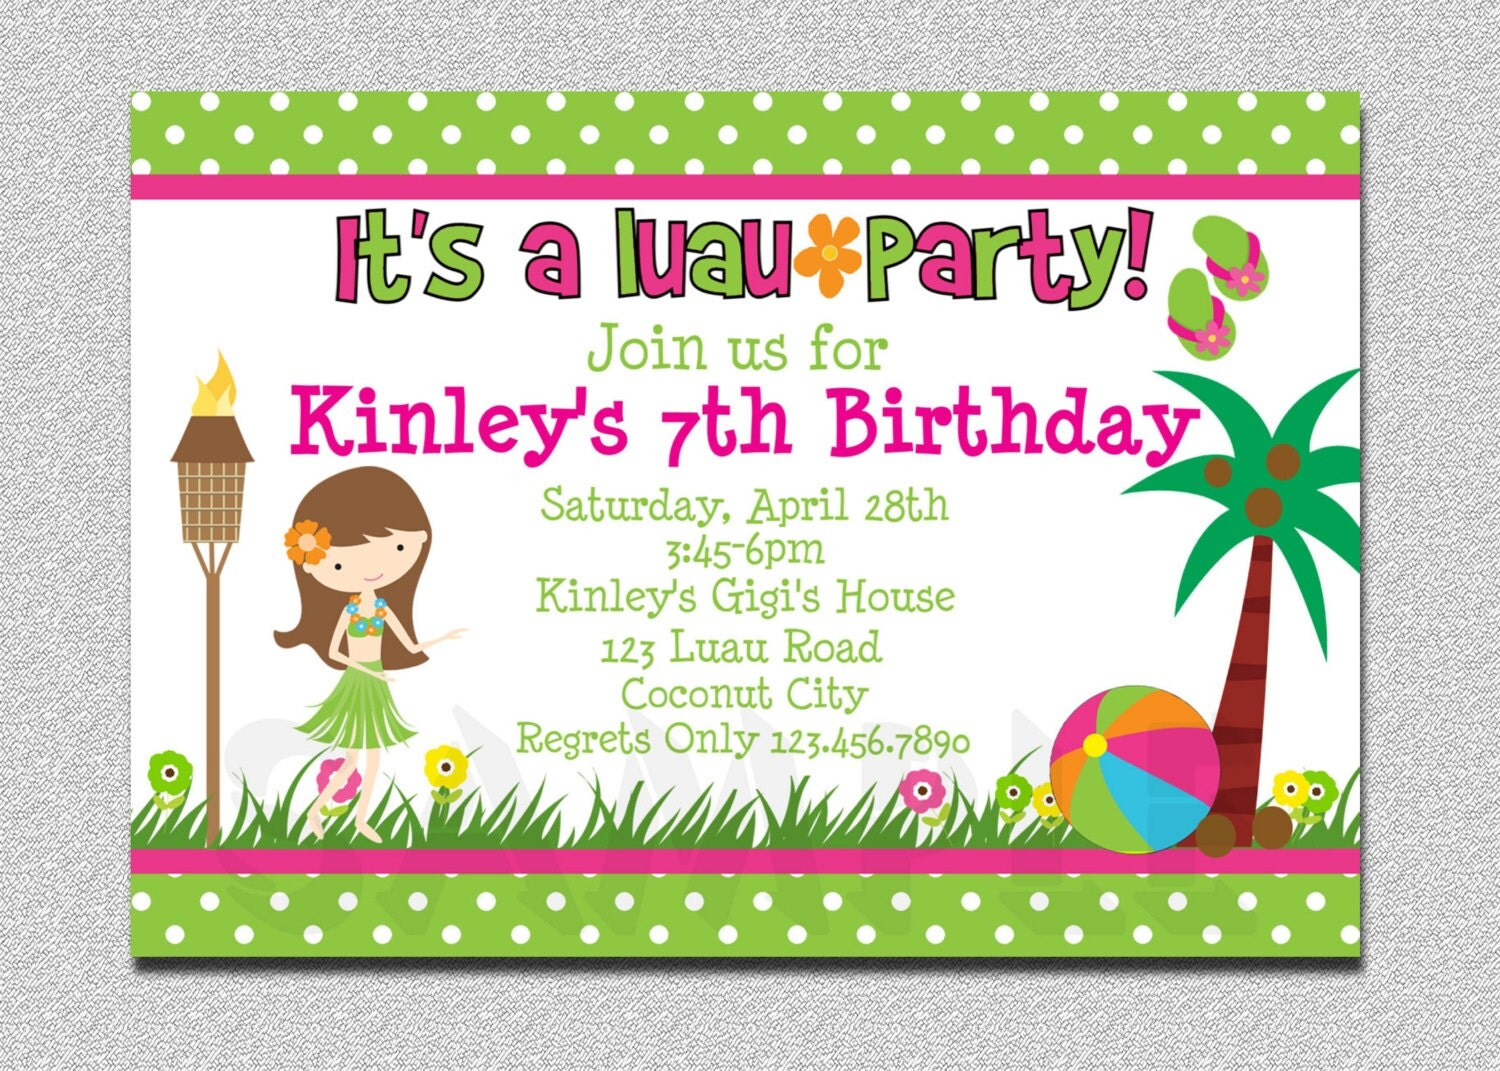 luau birthday invitation luau birthday party invitation, invitation samples